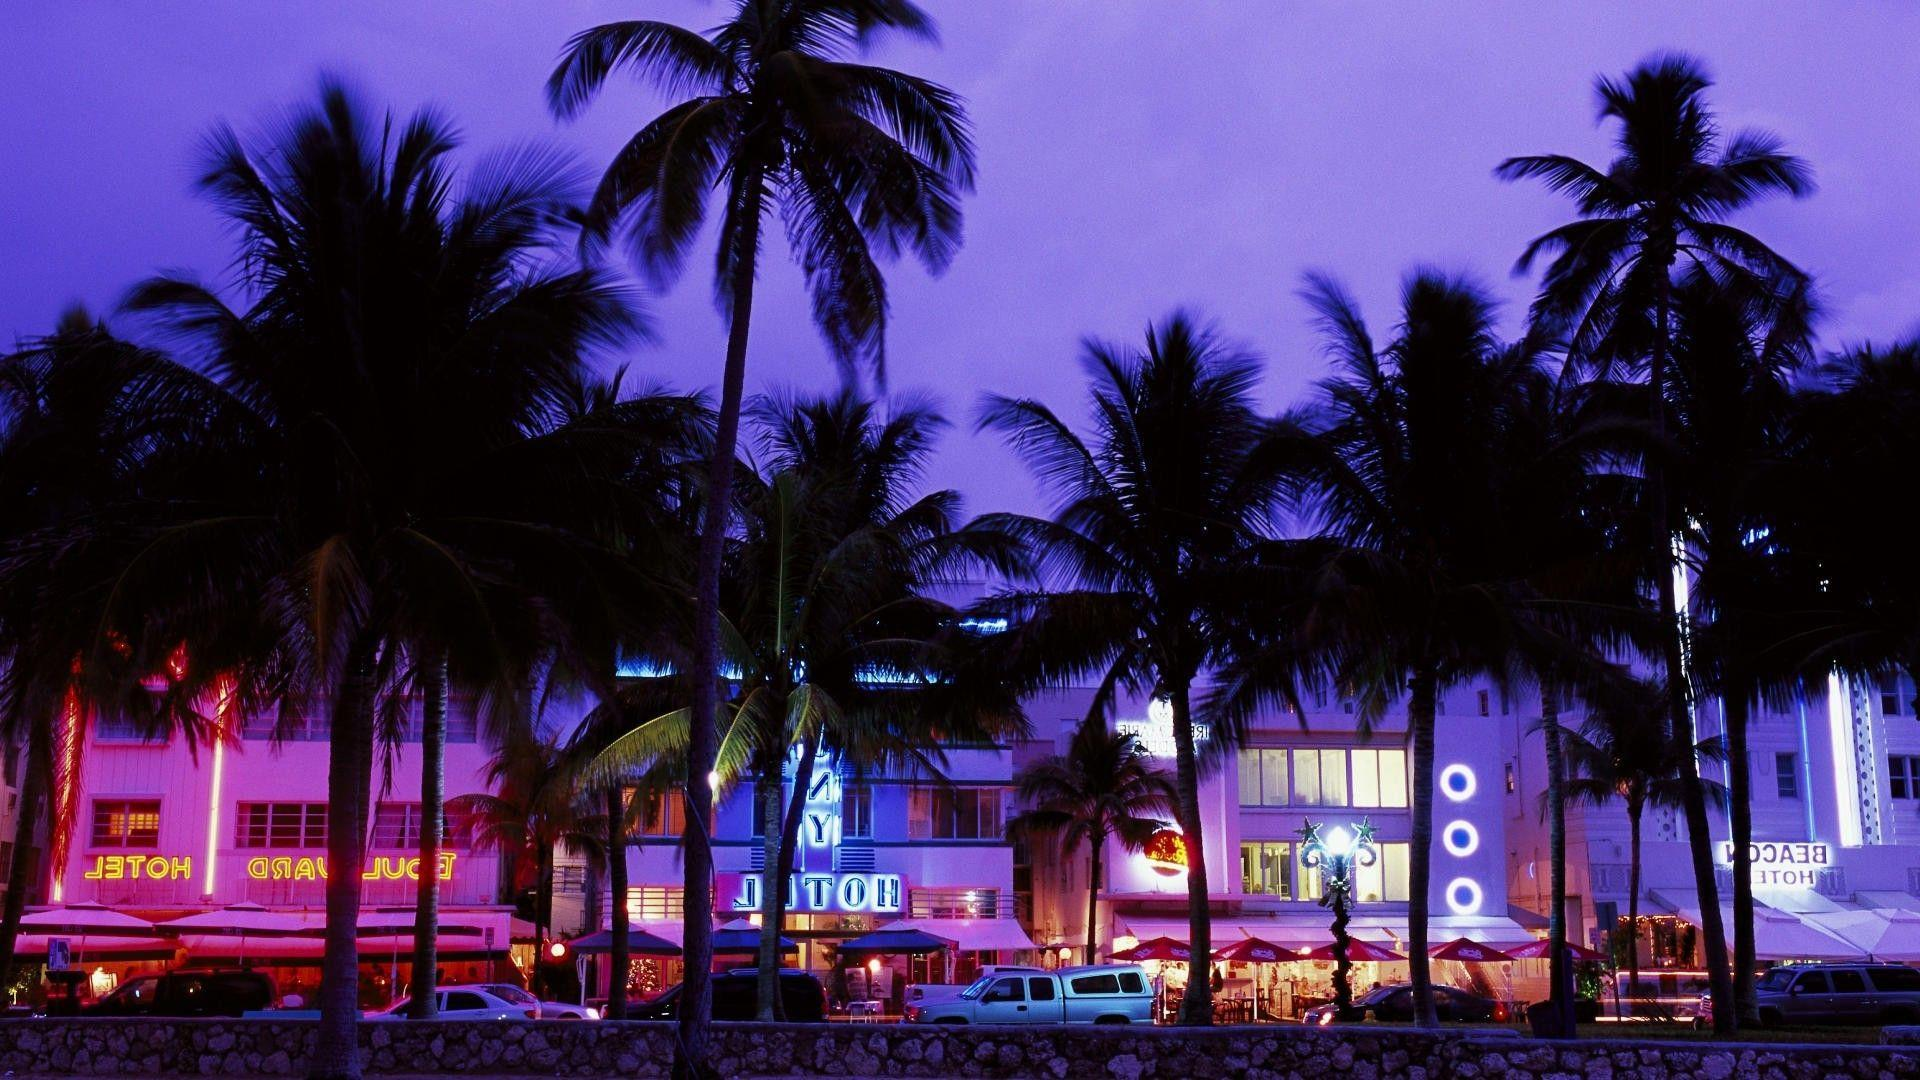 Grand Theft Auto Vice City, Hotels, Beach, Palm Trees, Neon ...